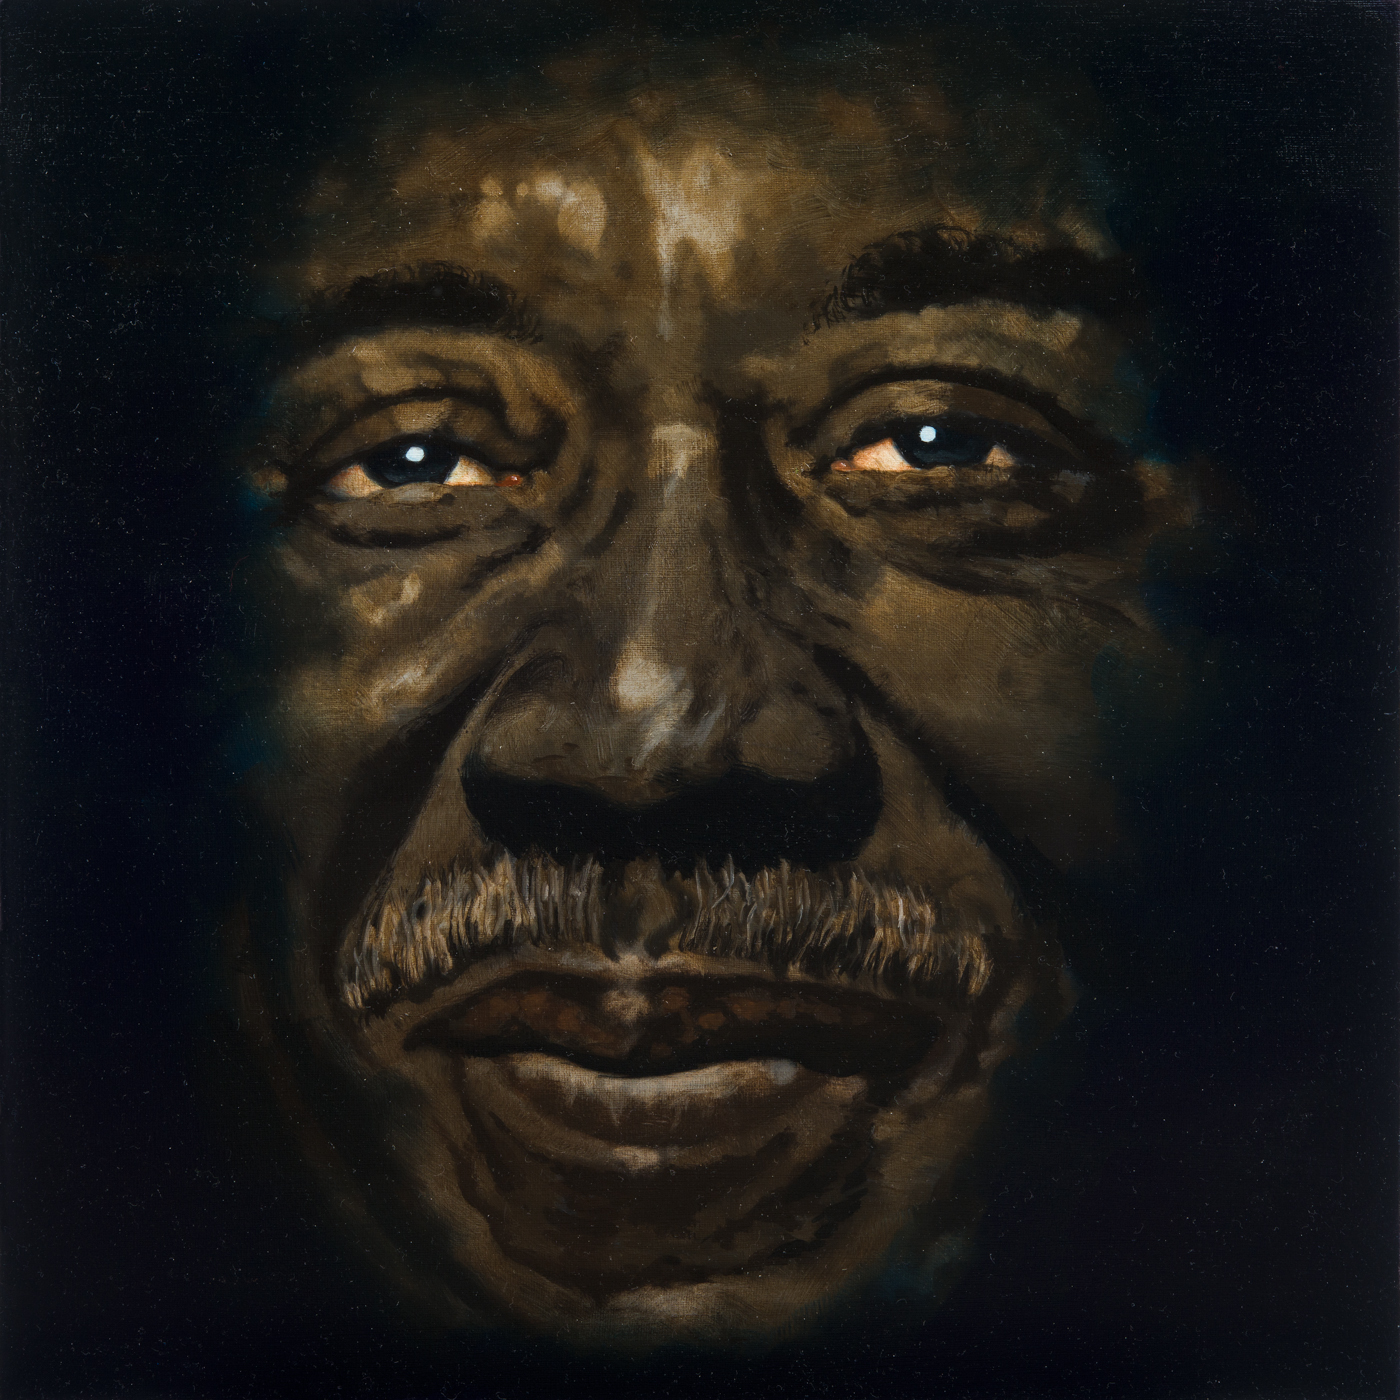 Muddy waters pictures gallery Muddy Waters Photos Bob Corritore - Official Website